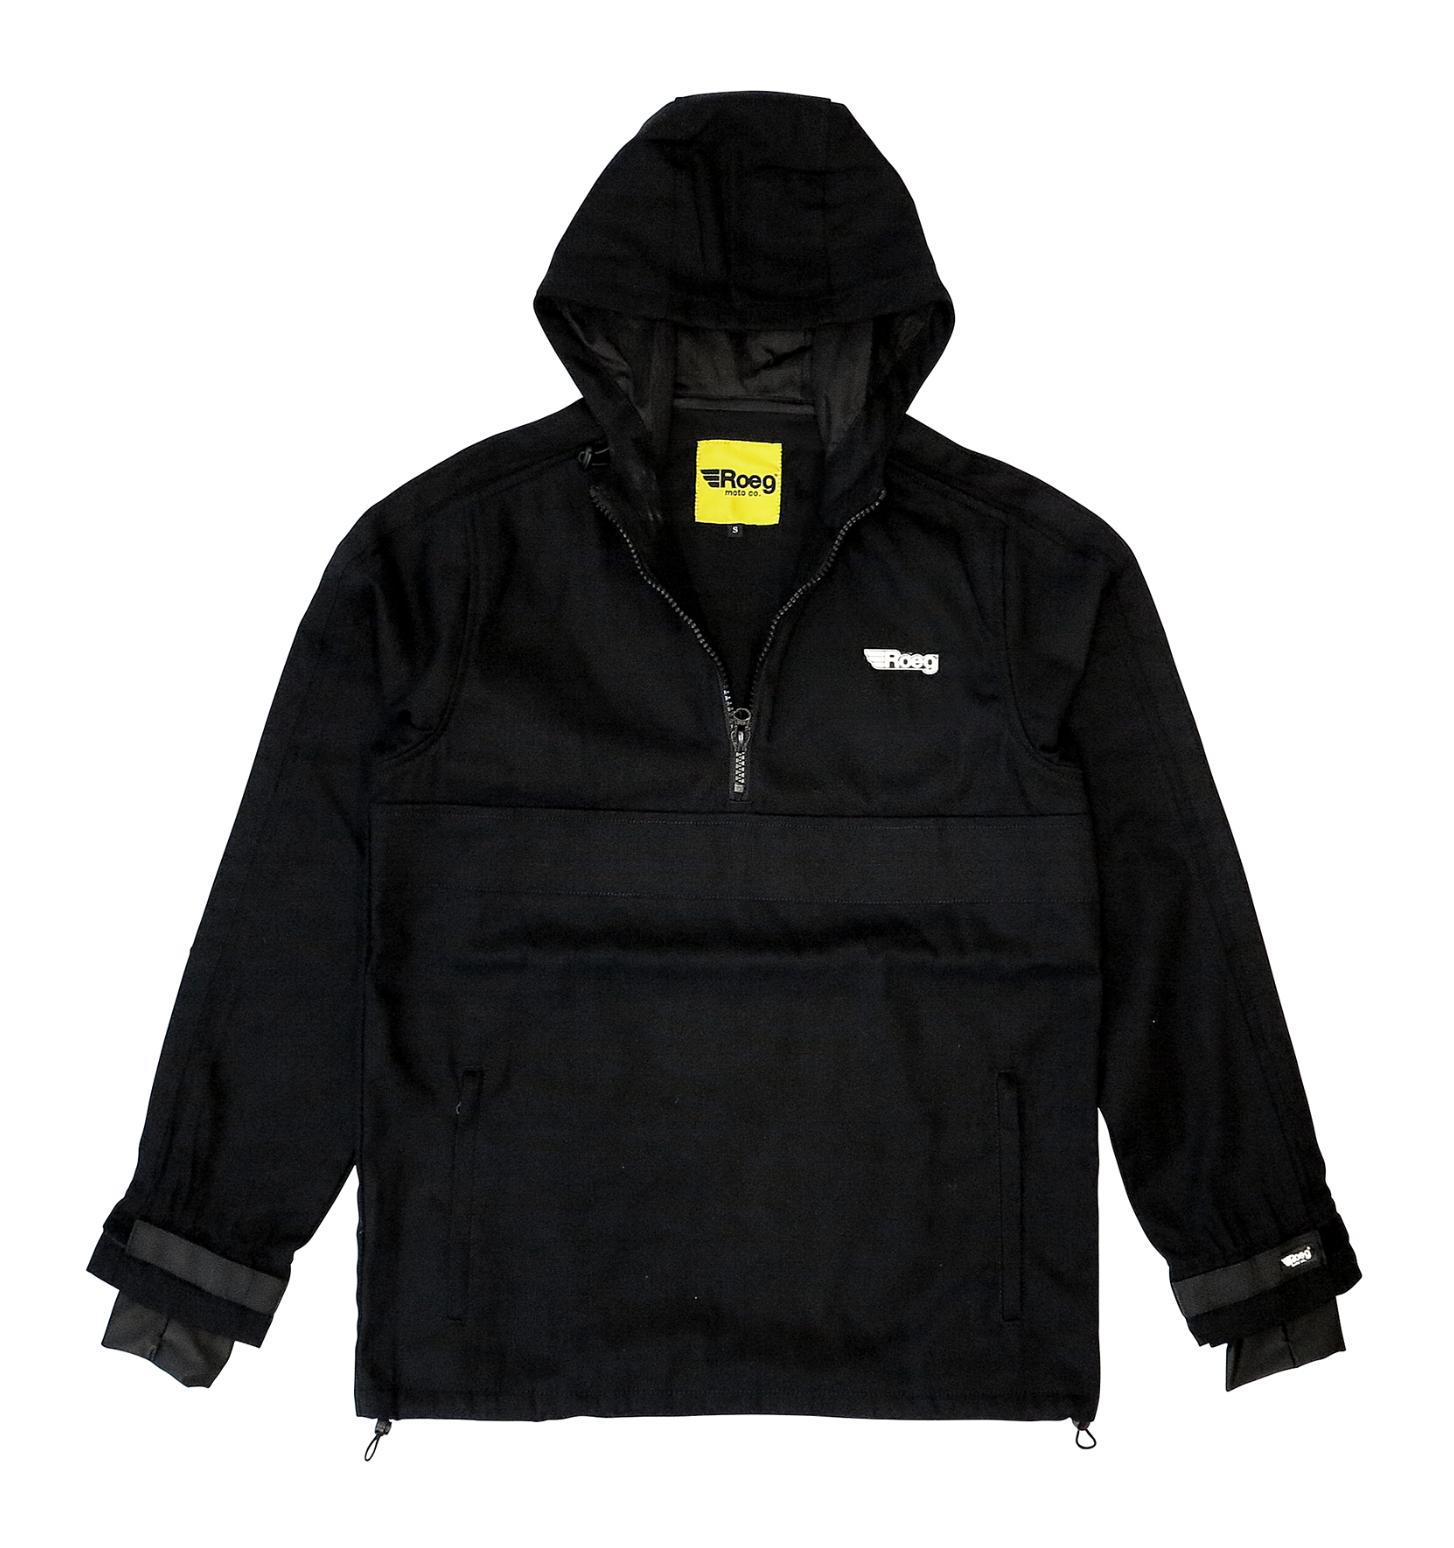 ROEG CASEY JACKET ALL BLACK - Dutch on Wheels